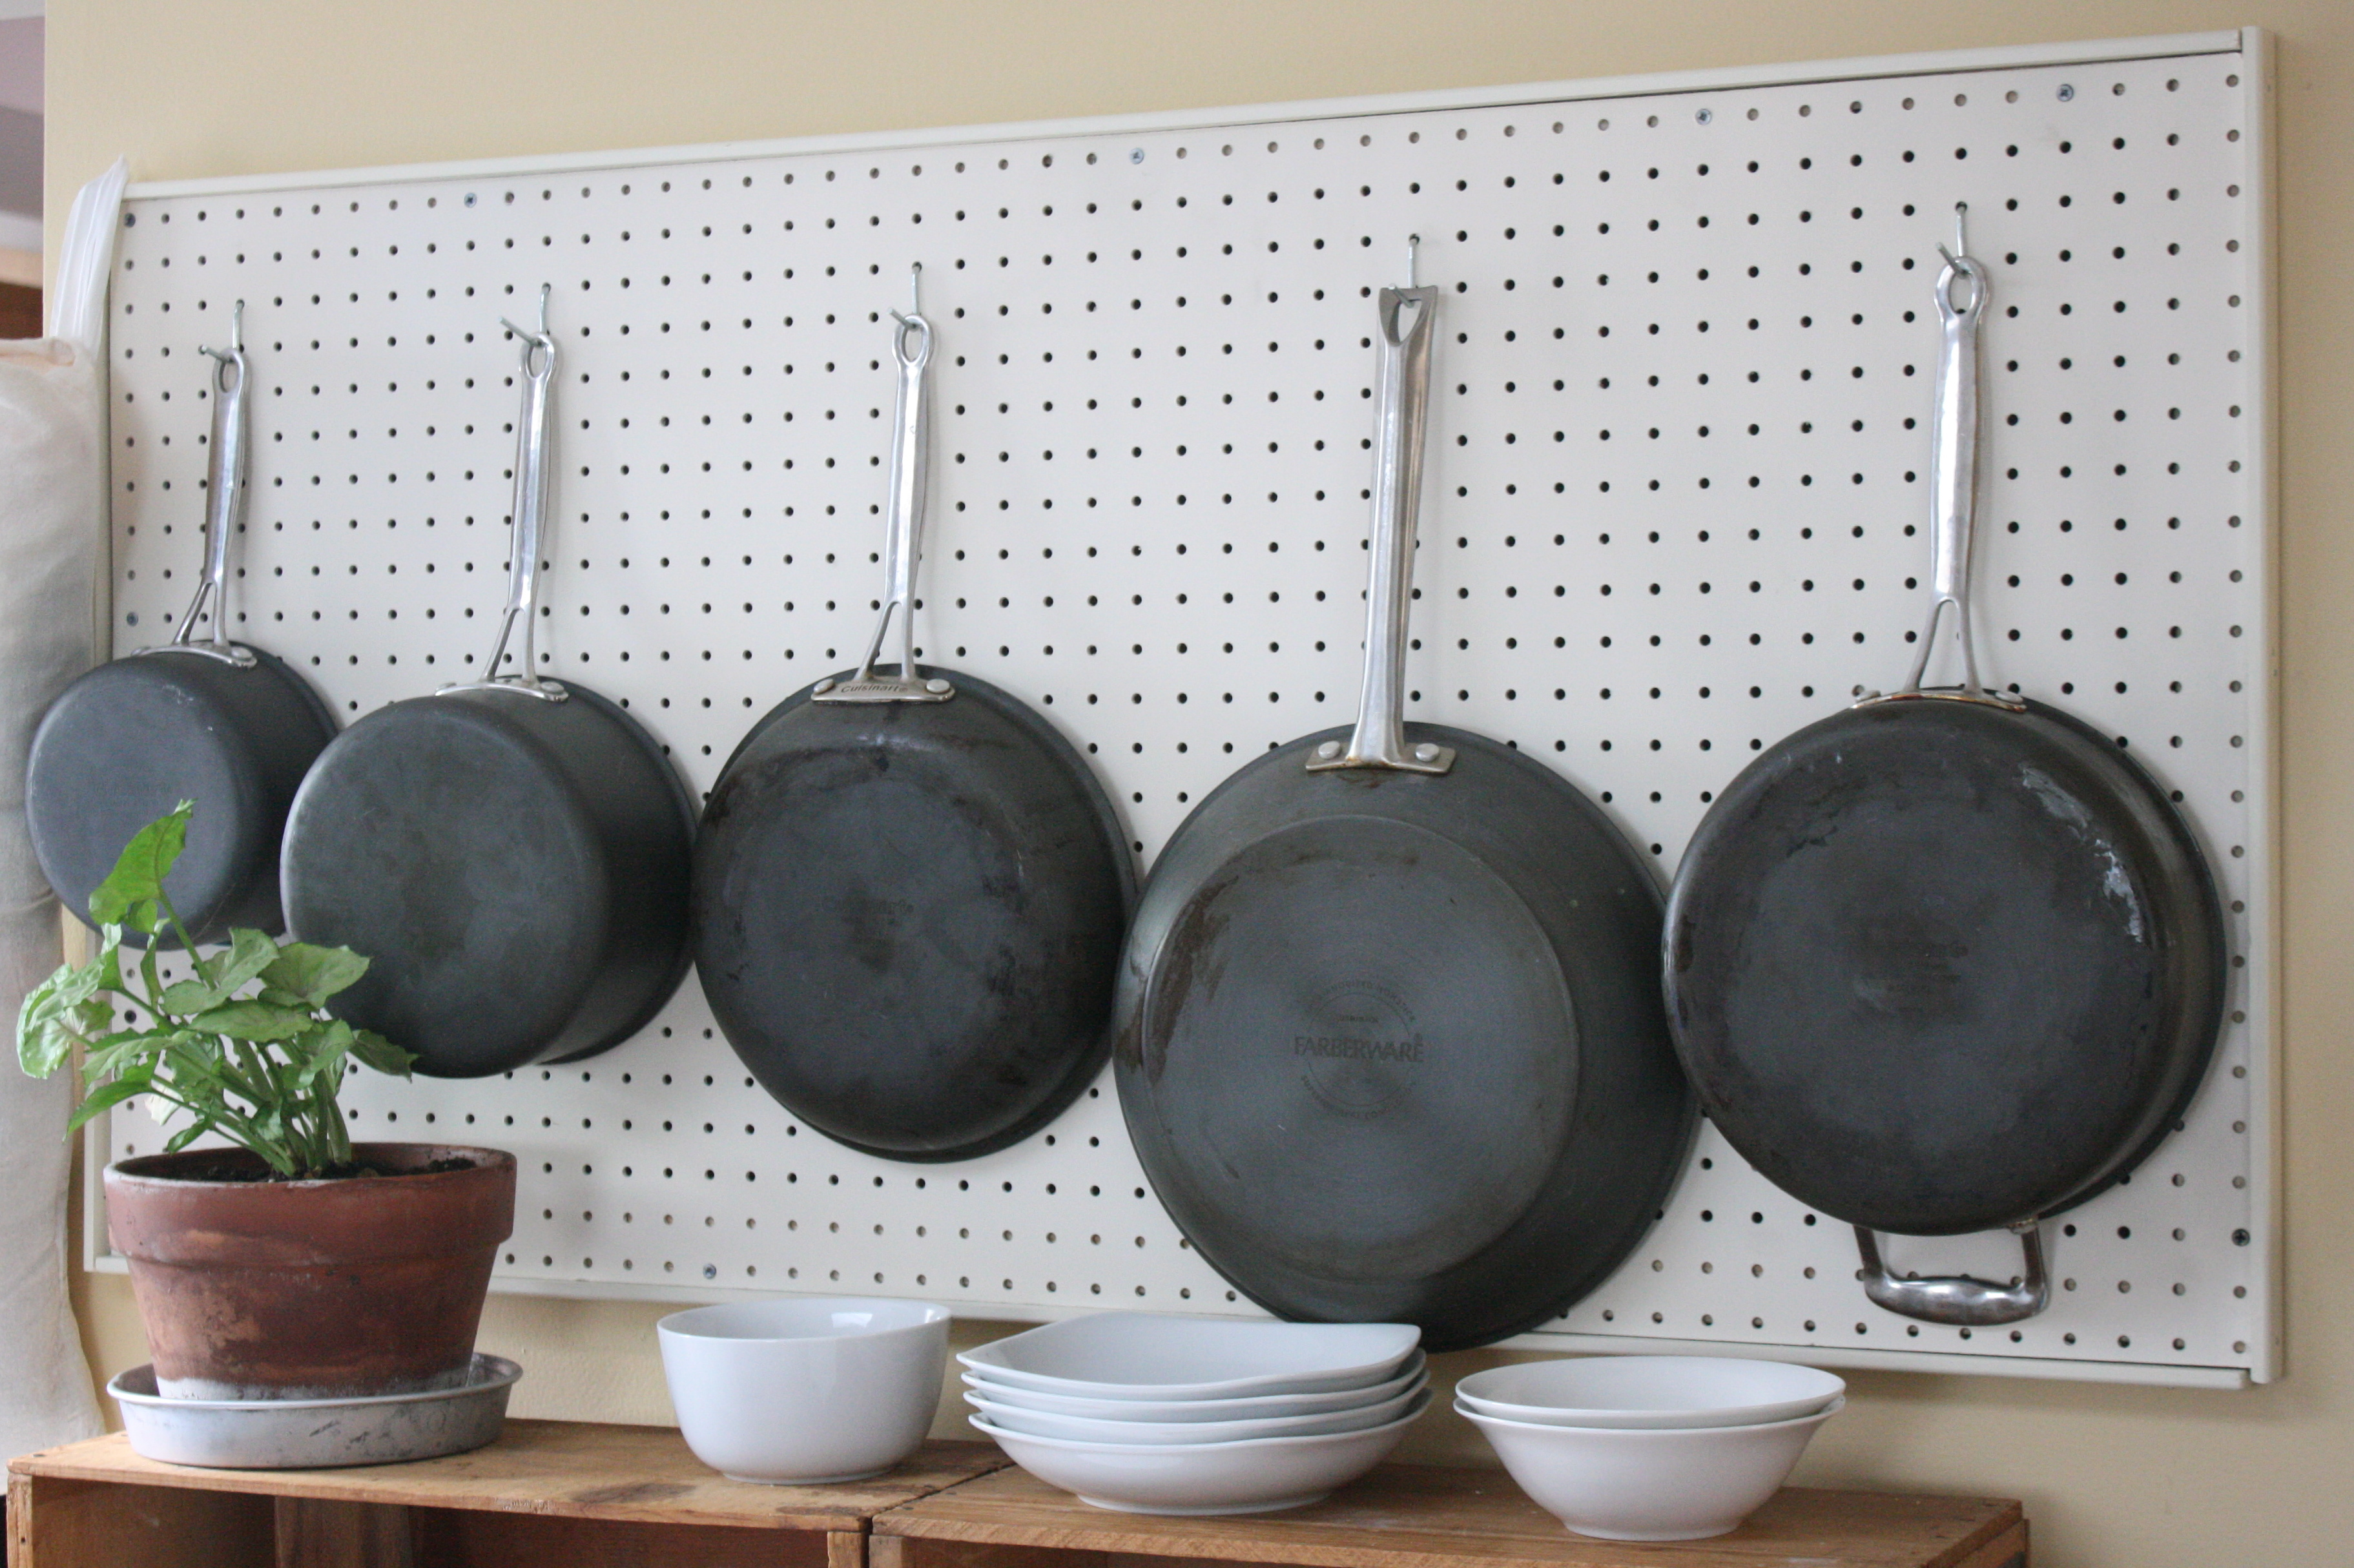 Space saving built in storage ideas for your home hipvan for Kitchen pegboard ideas